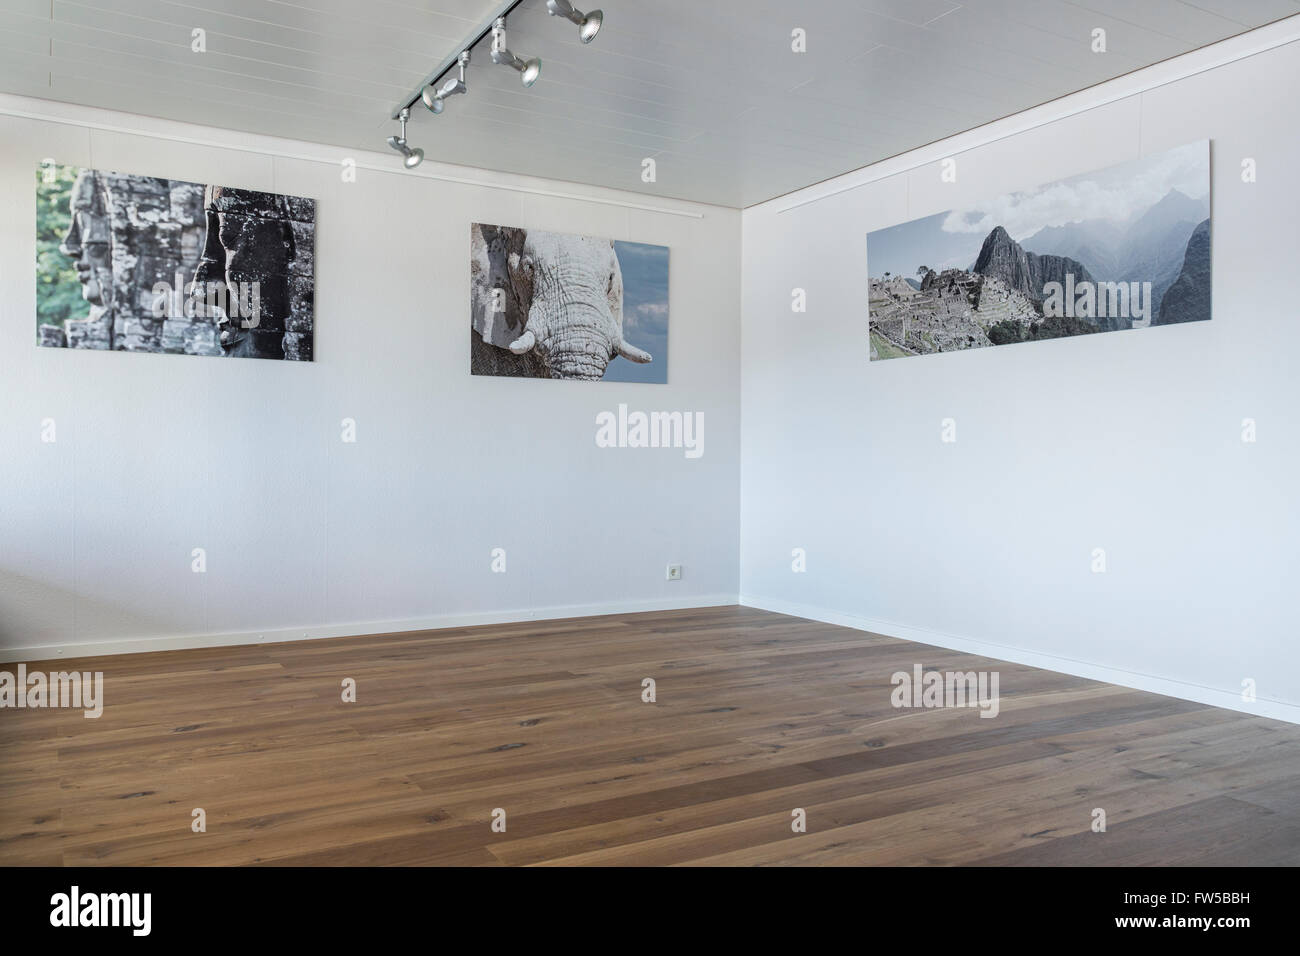 Empty room with parquet floor and individual posters hanging on the wall - Stock Image